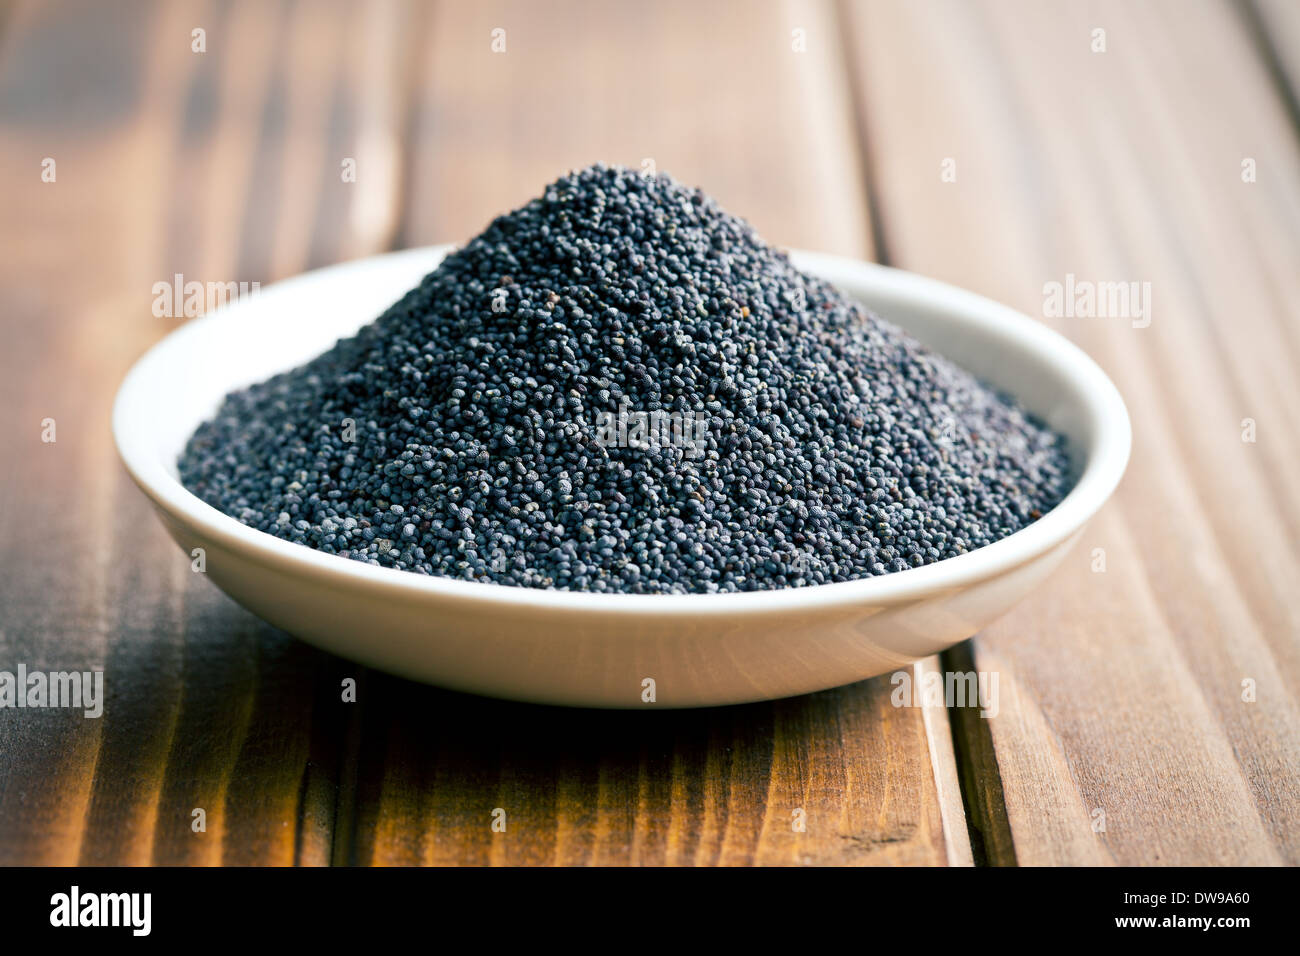 the poppy seed in bowl - Stock Image